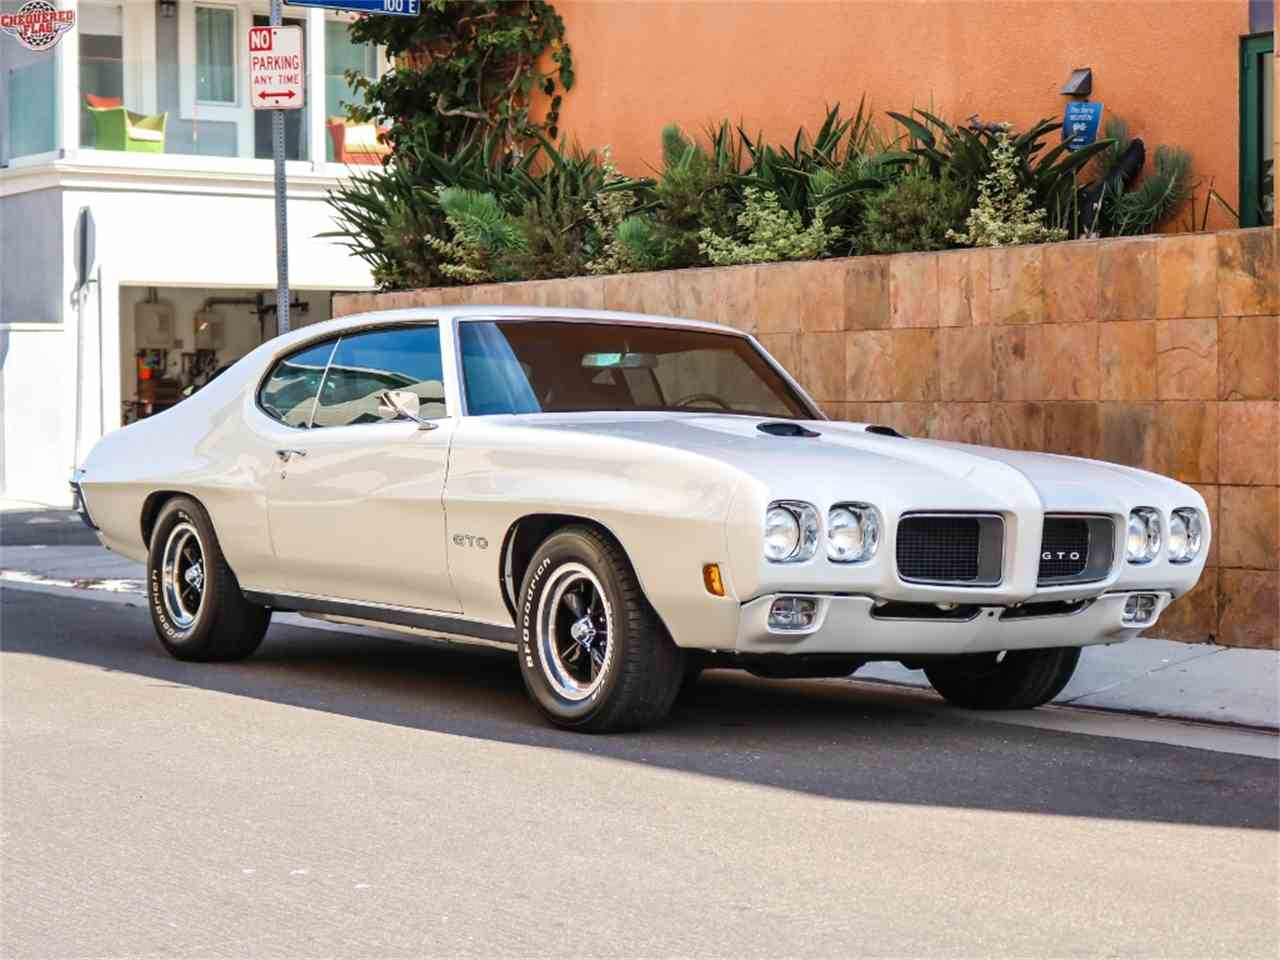 Large Picture of Classic '70 GTO located in Marina Del Rey California Offered by Chequered Flag International - LTS2